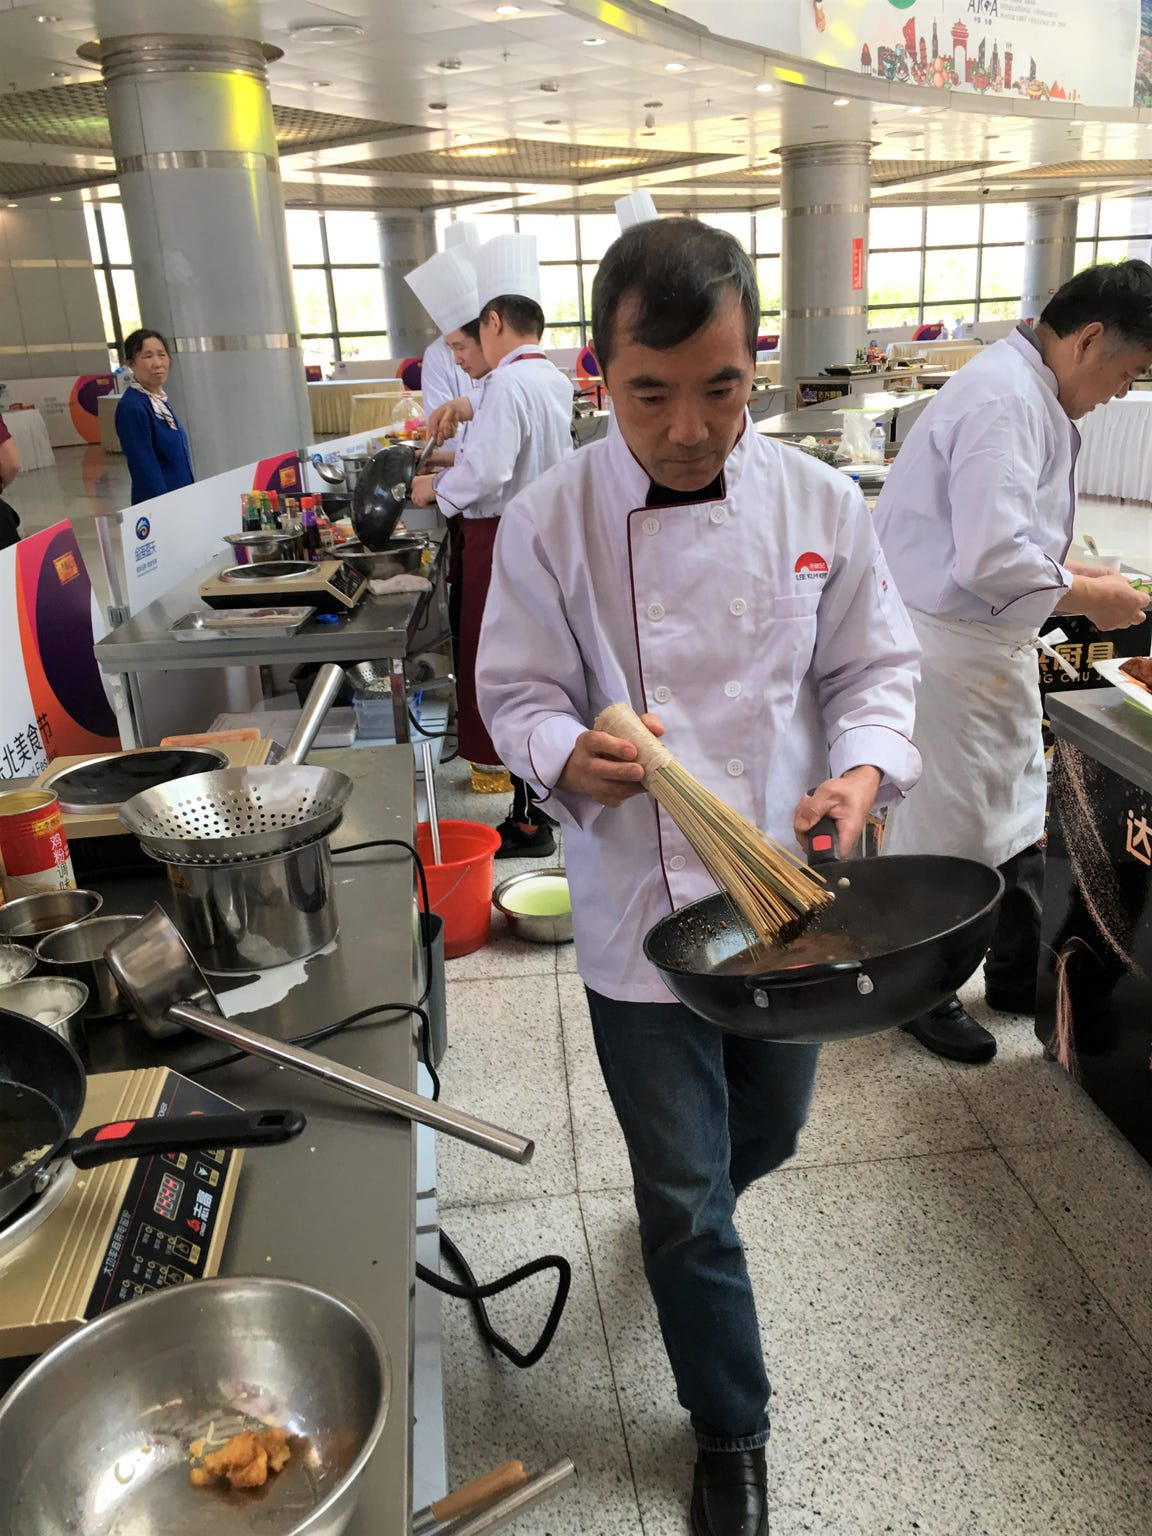 Chef Byron Huang prepares his wok for cooking at a